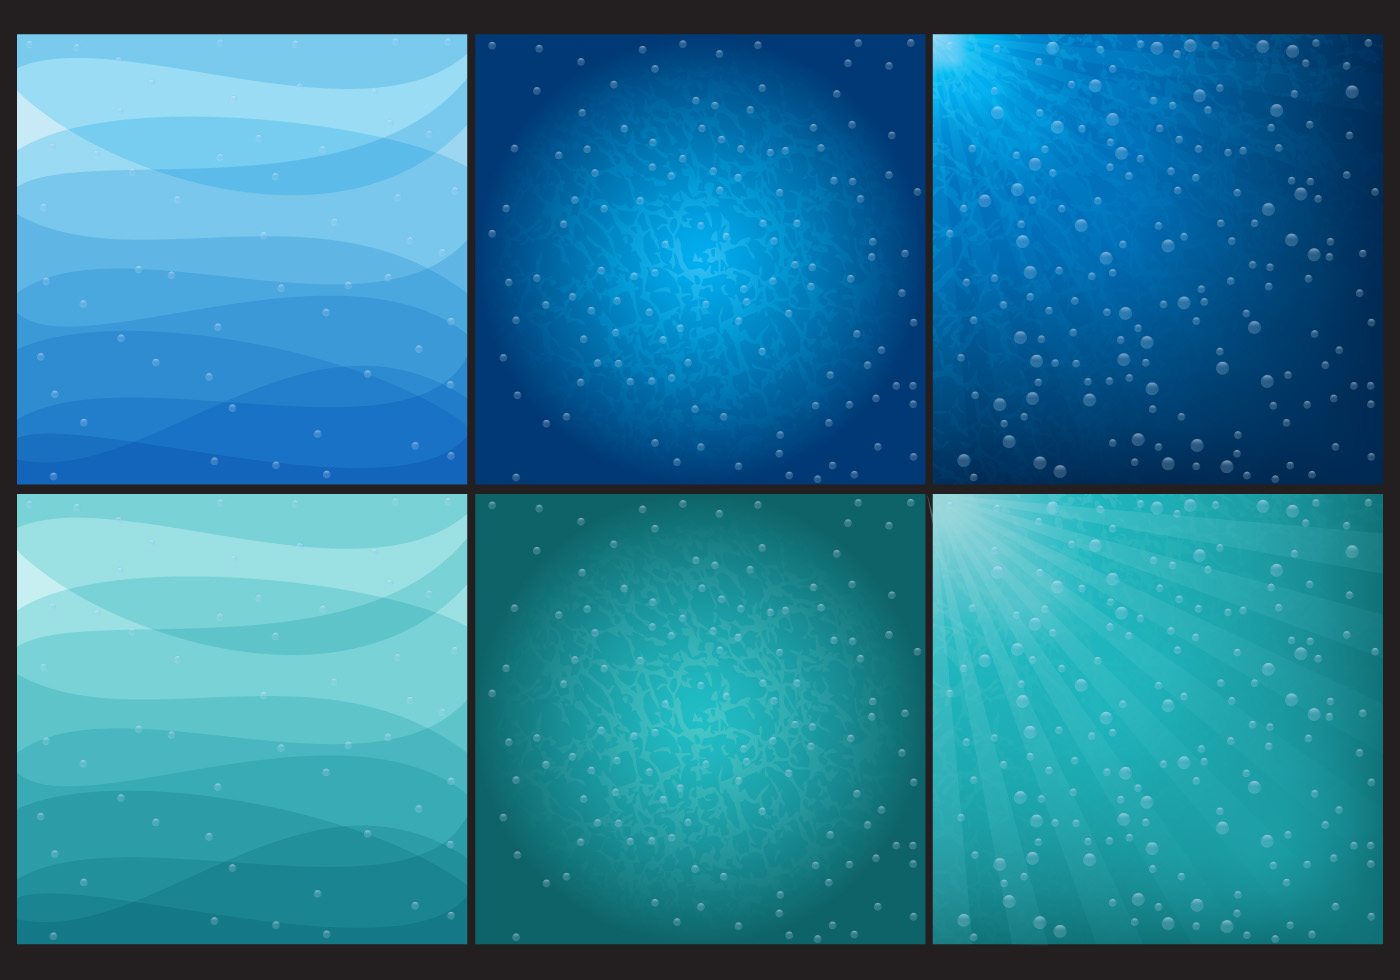 Blue And Green Water Backgrounds Download Free Vector